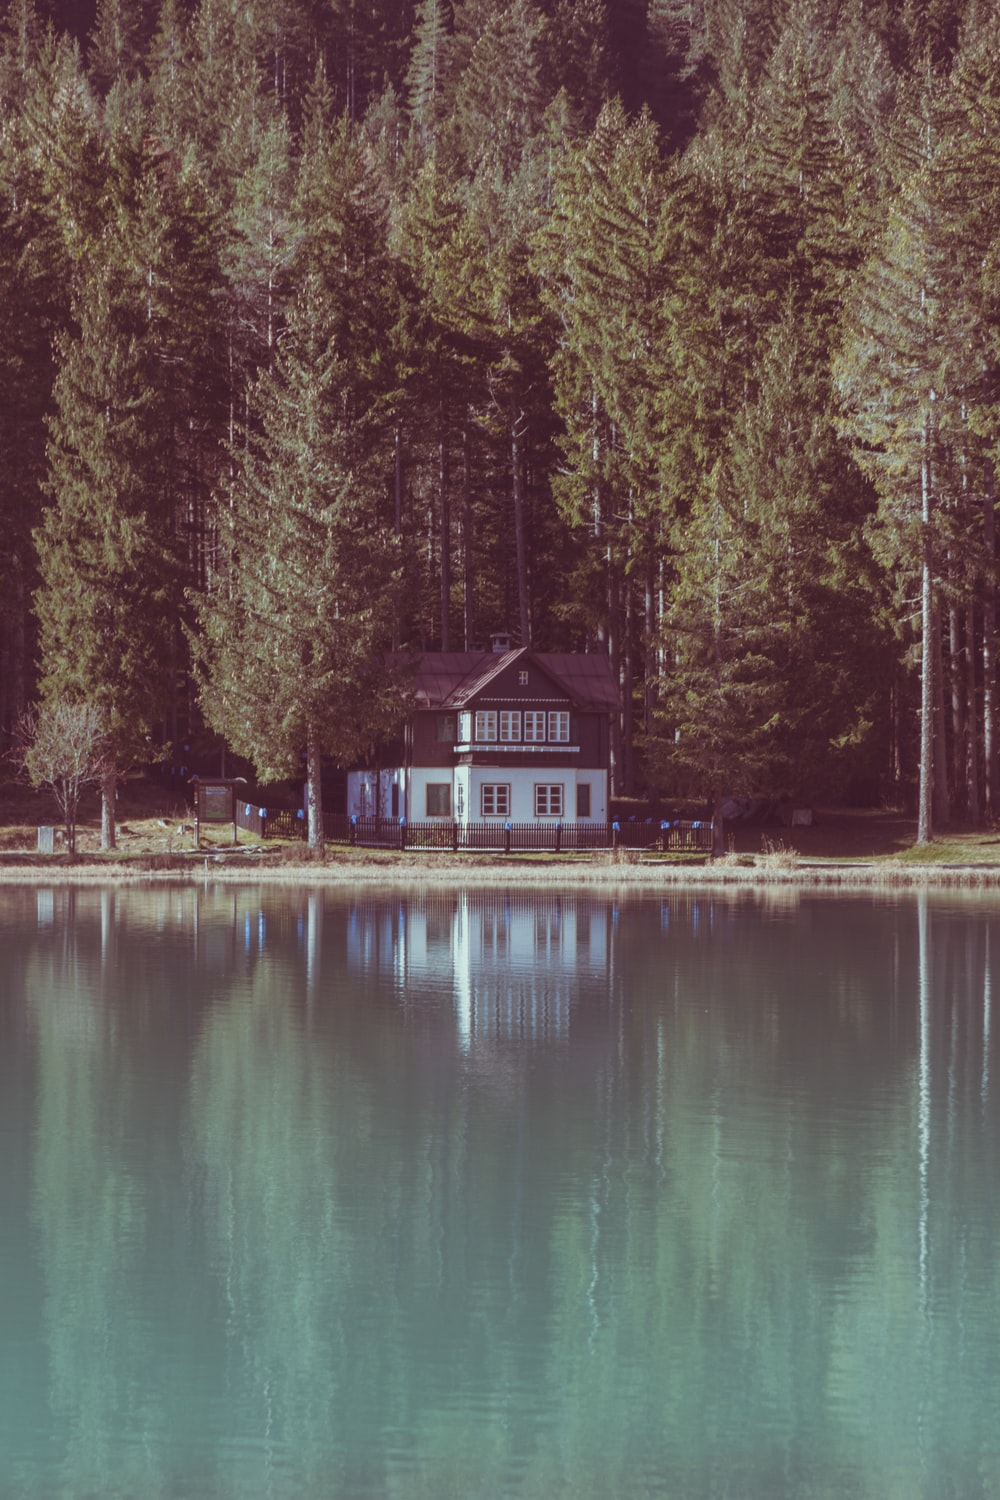 Mountain Cabin Pictures Hd Download Free Images On Unsplash